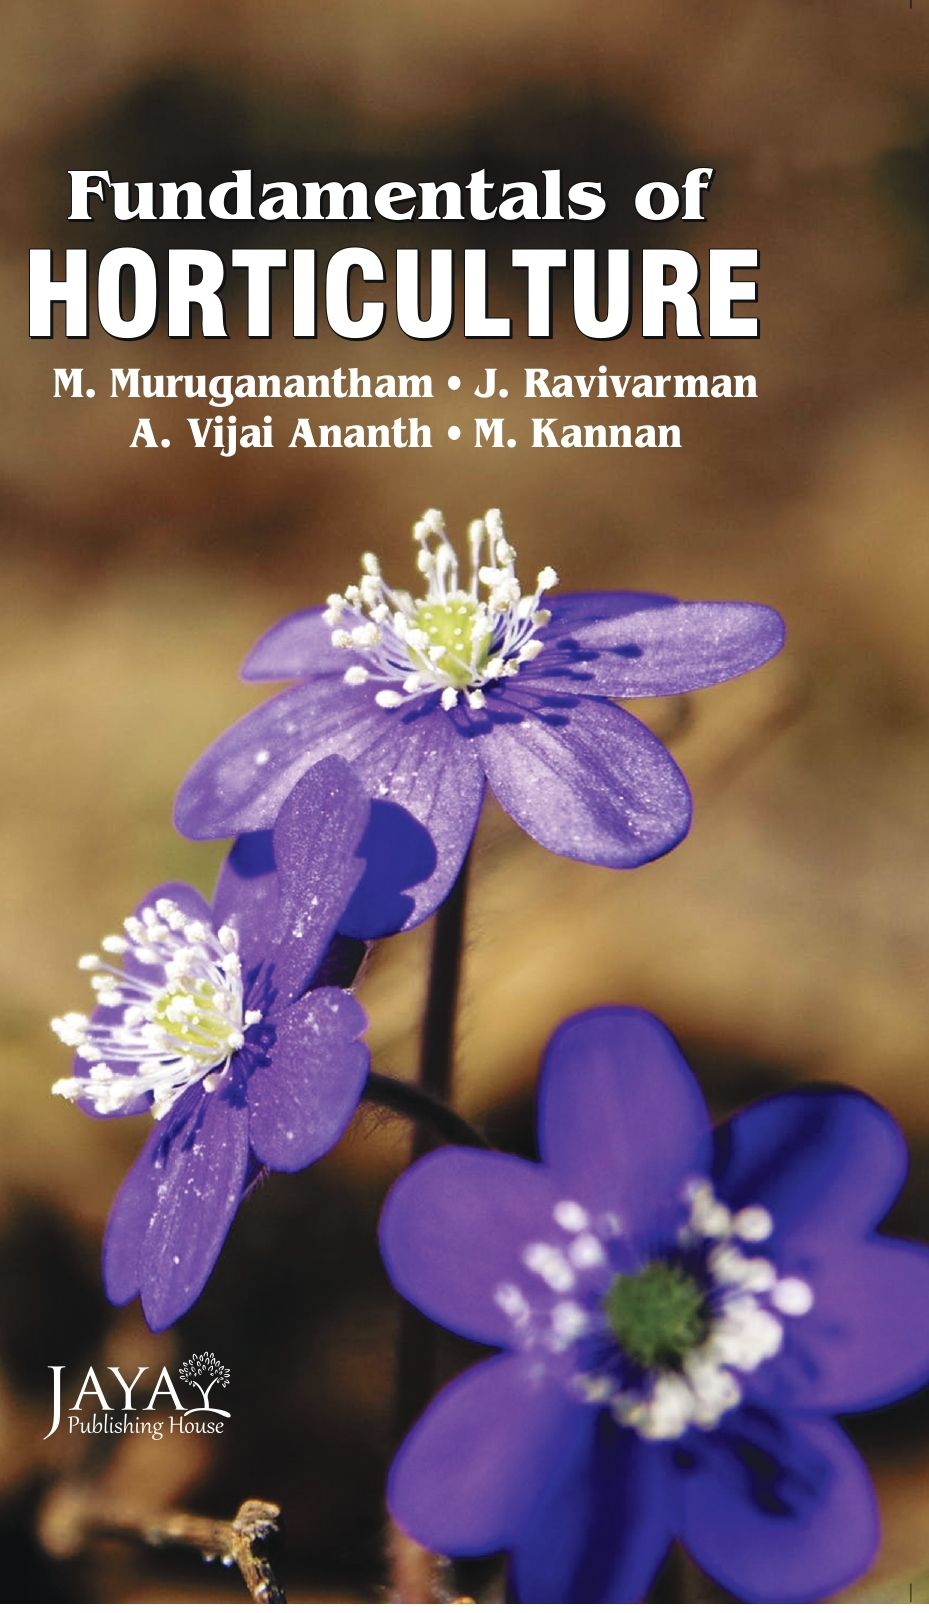 Fundamentals of Horticulture (PB)